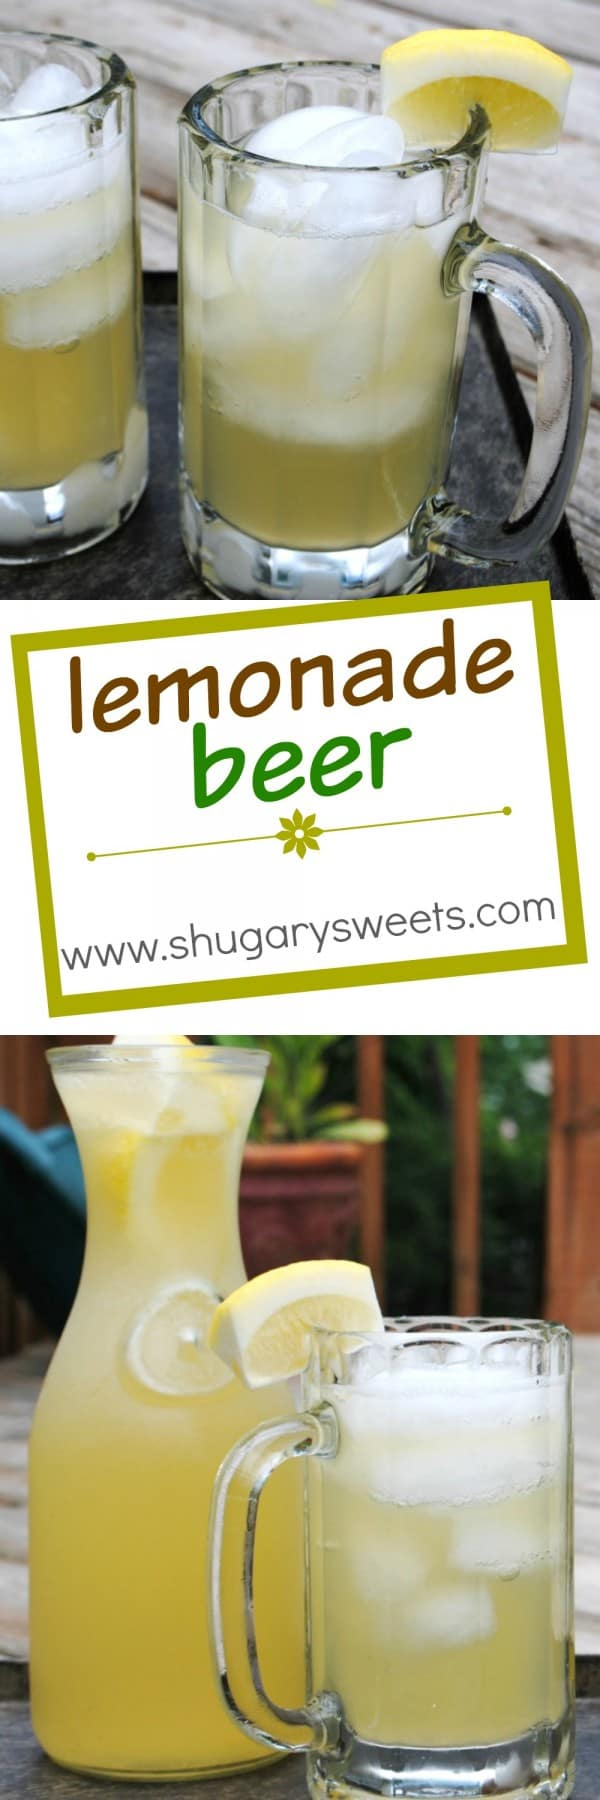 Lemonade Beer with cherry rum: easy and refreshing! summer cocktails anyone?